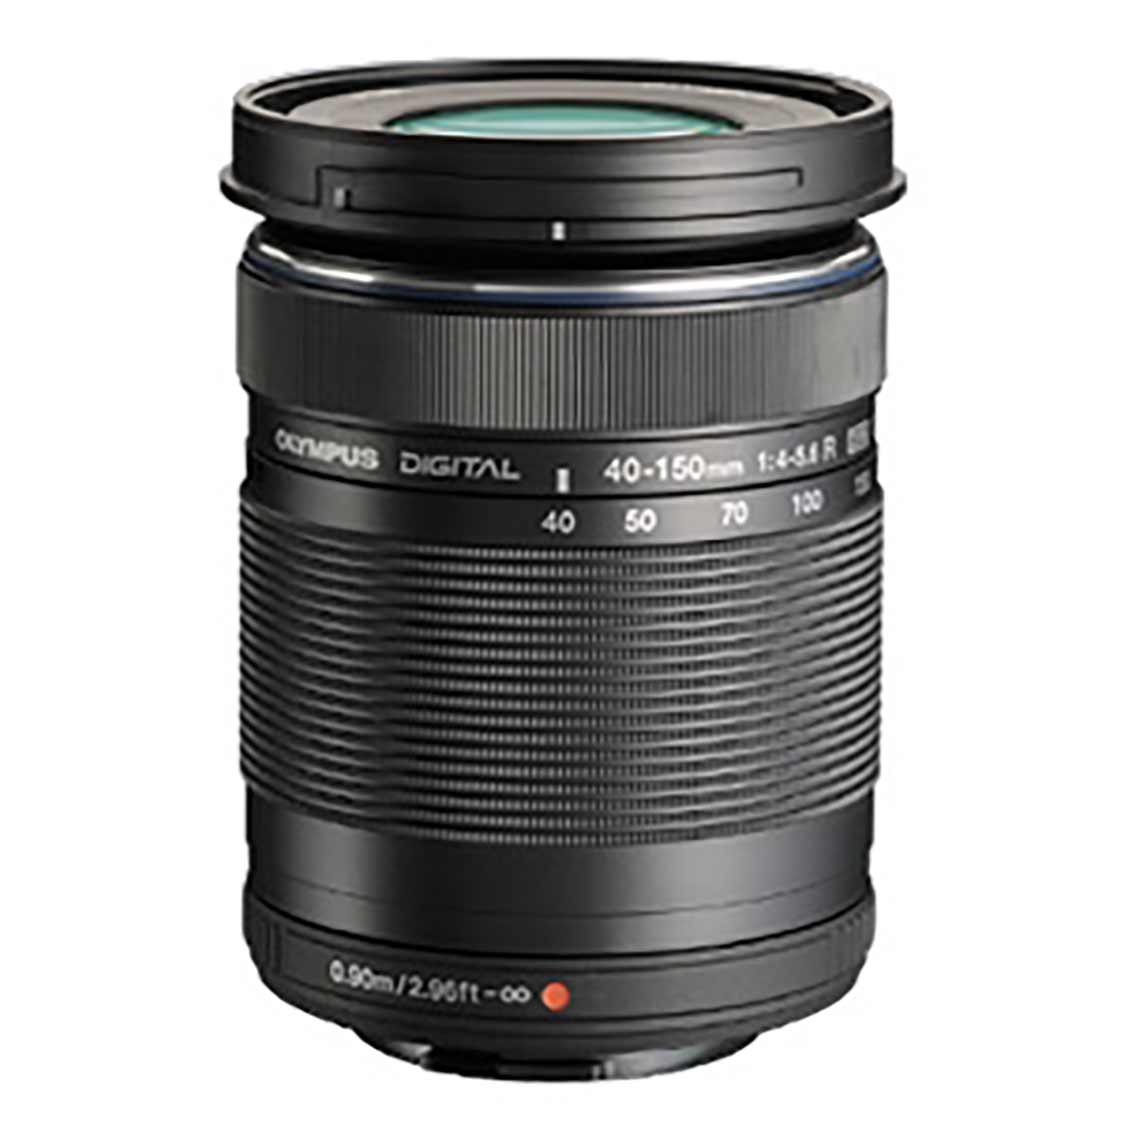 Olympus ED 40-150mm F4.0-5.6 R Micro Four Thirds Lens (black)